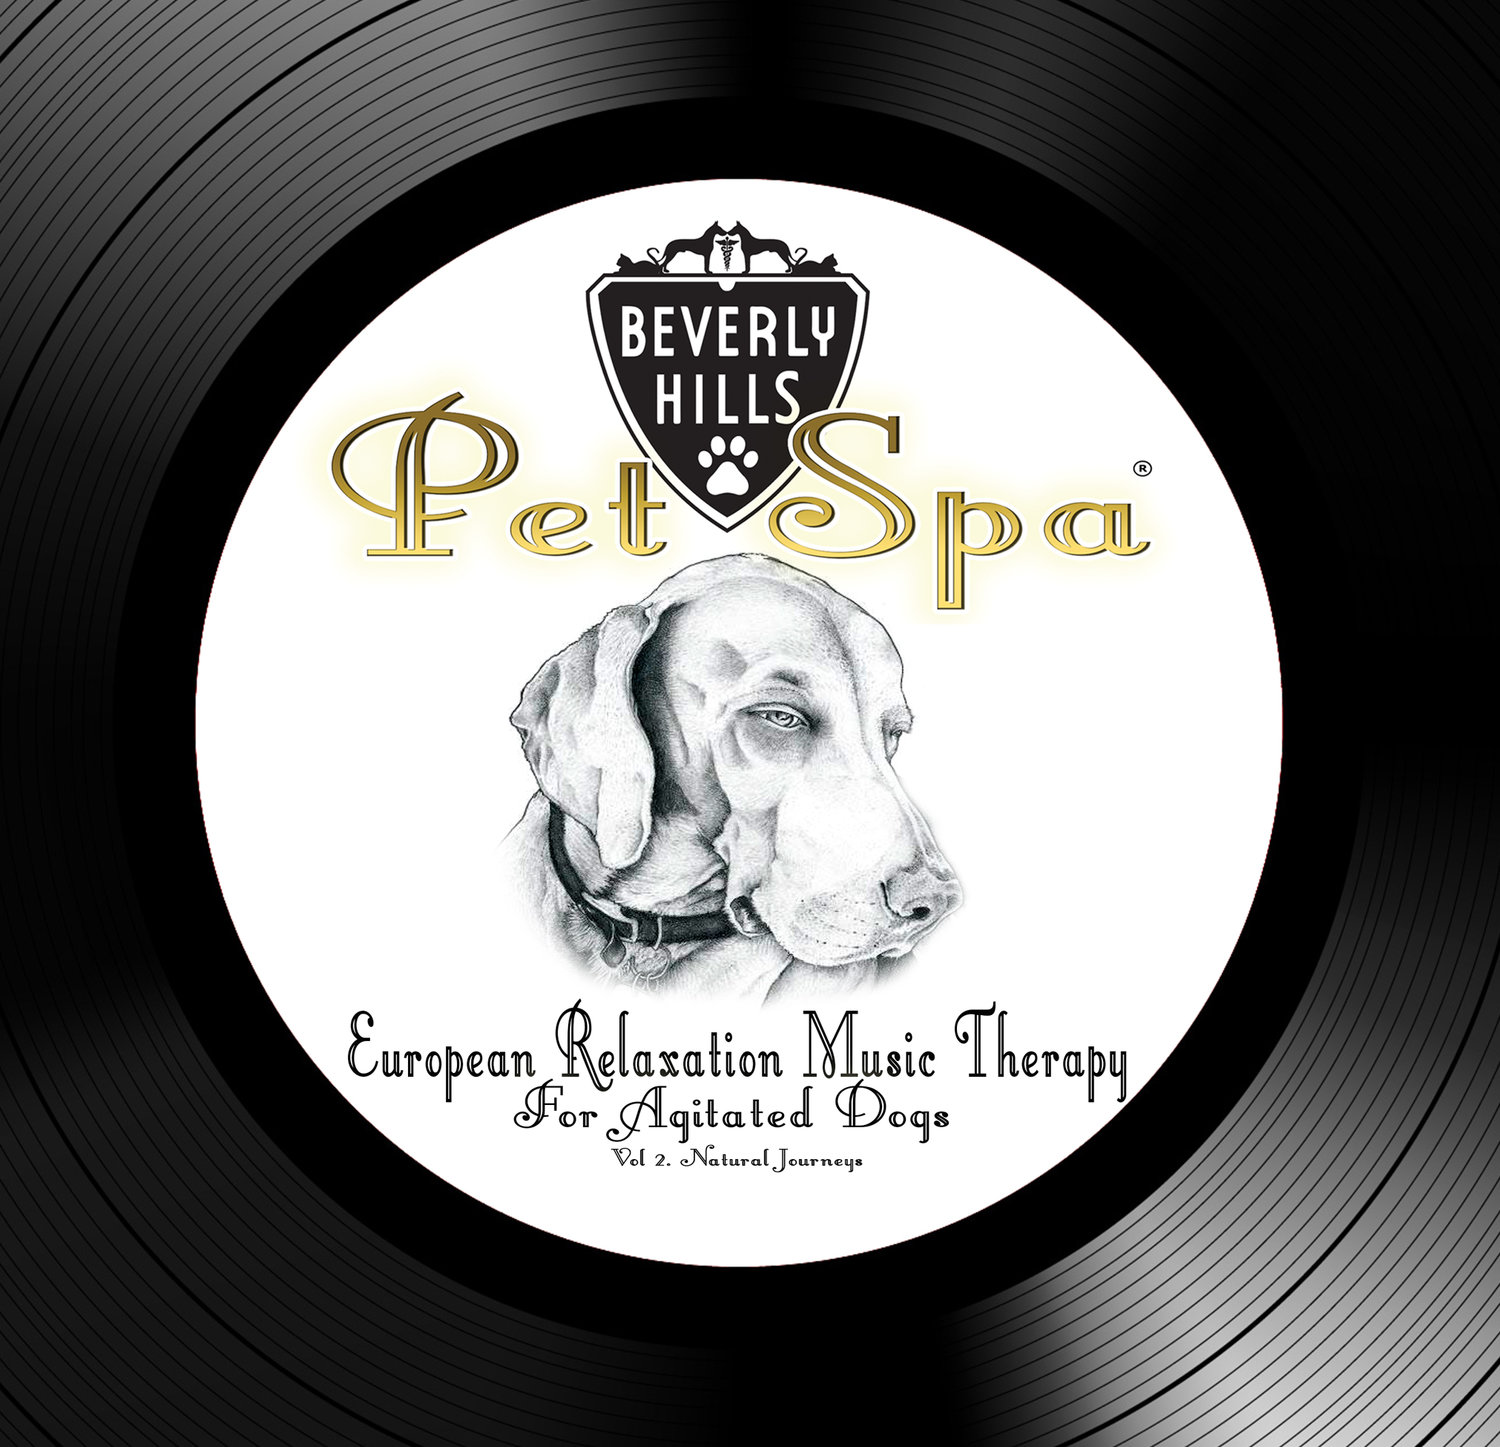 European Relaxation Music Therapy for Agitated Dogs - Vol 2  Natural  Journeys [1 HOUR LONG CONTINUOUS] Download